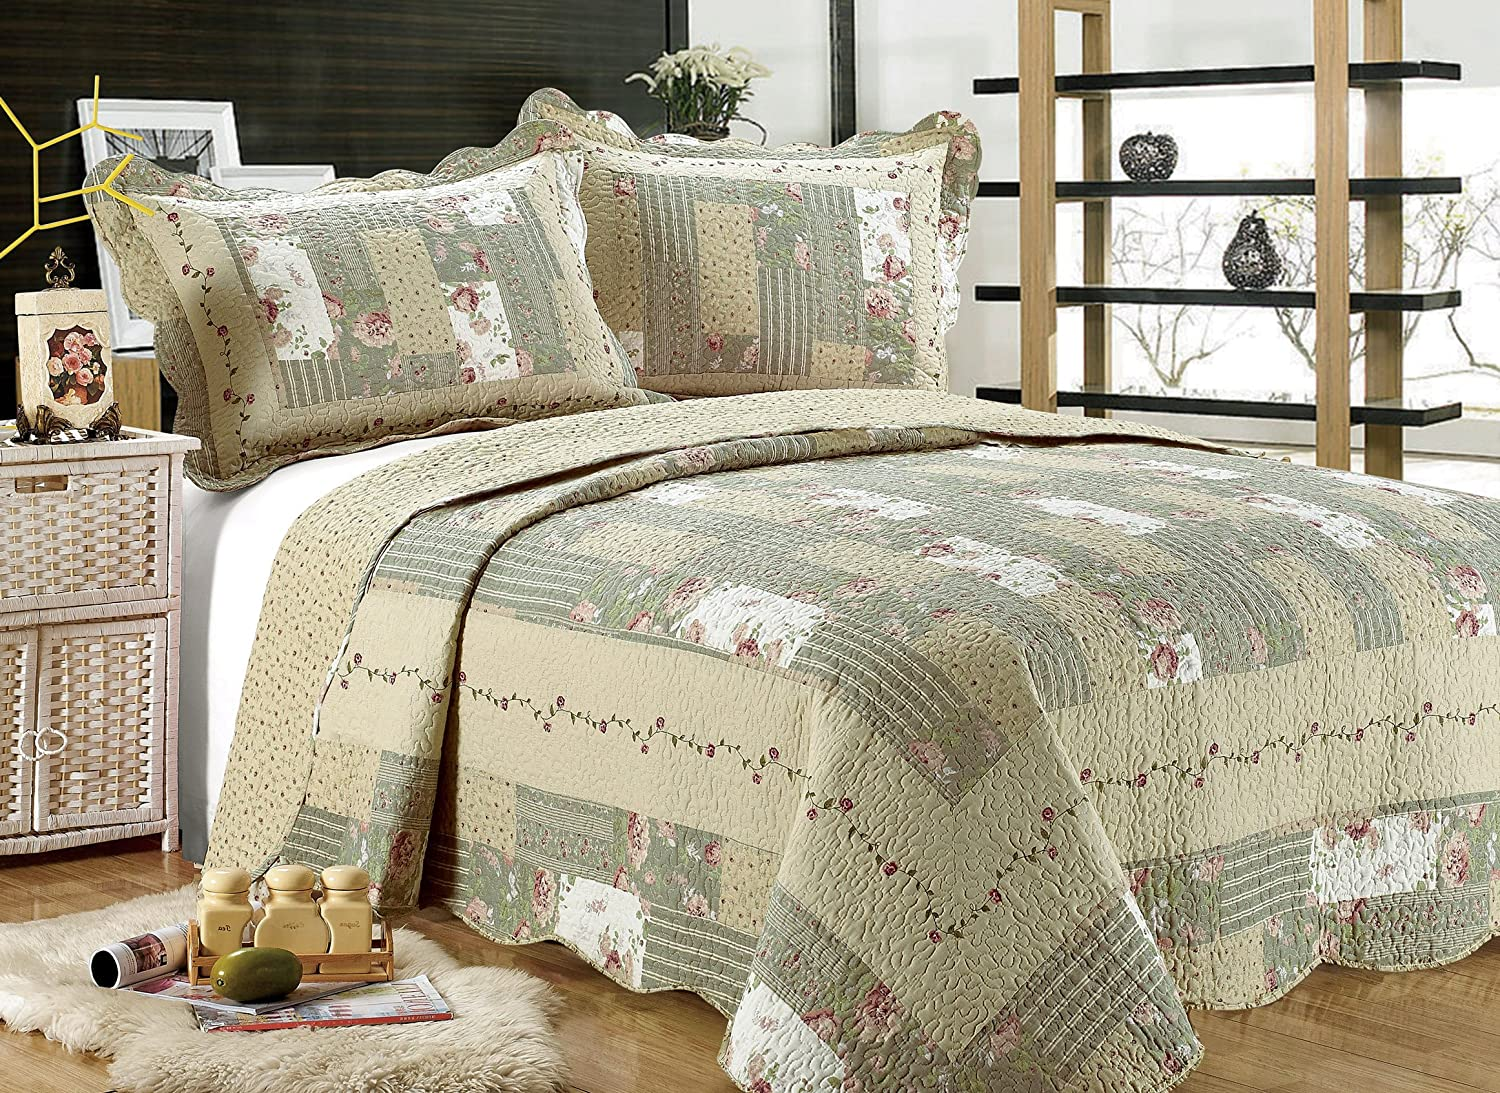 3-piece Reversible Bedspread/ Coverlet / Quilt Set-beige, pink, burgundy and sage green prints